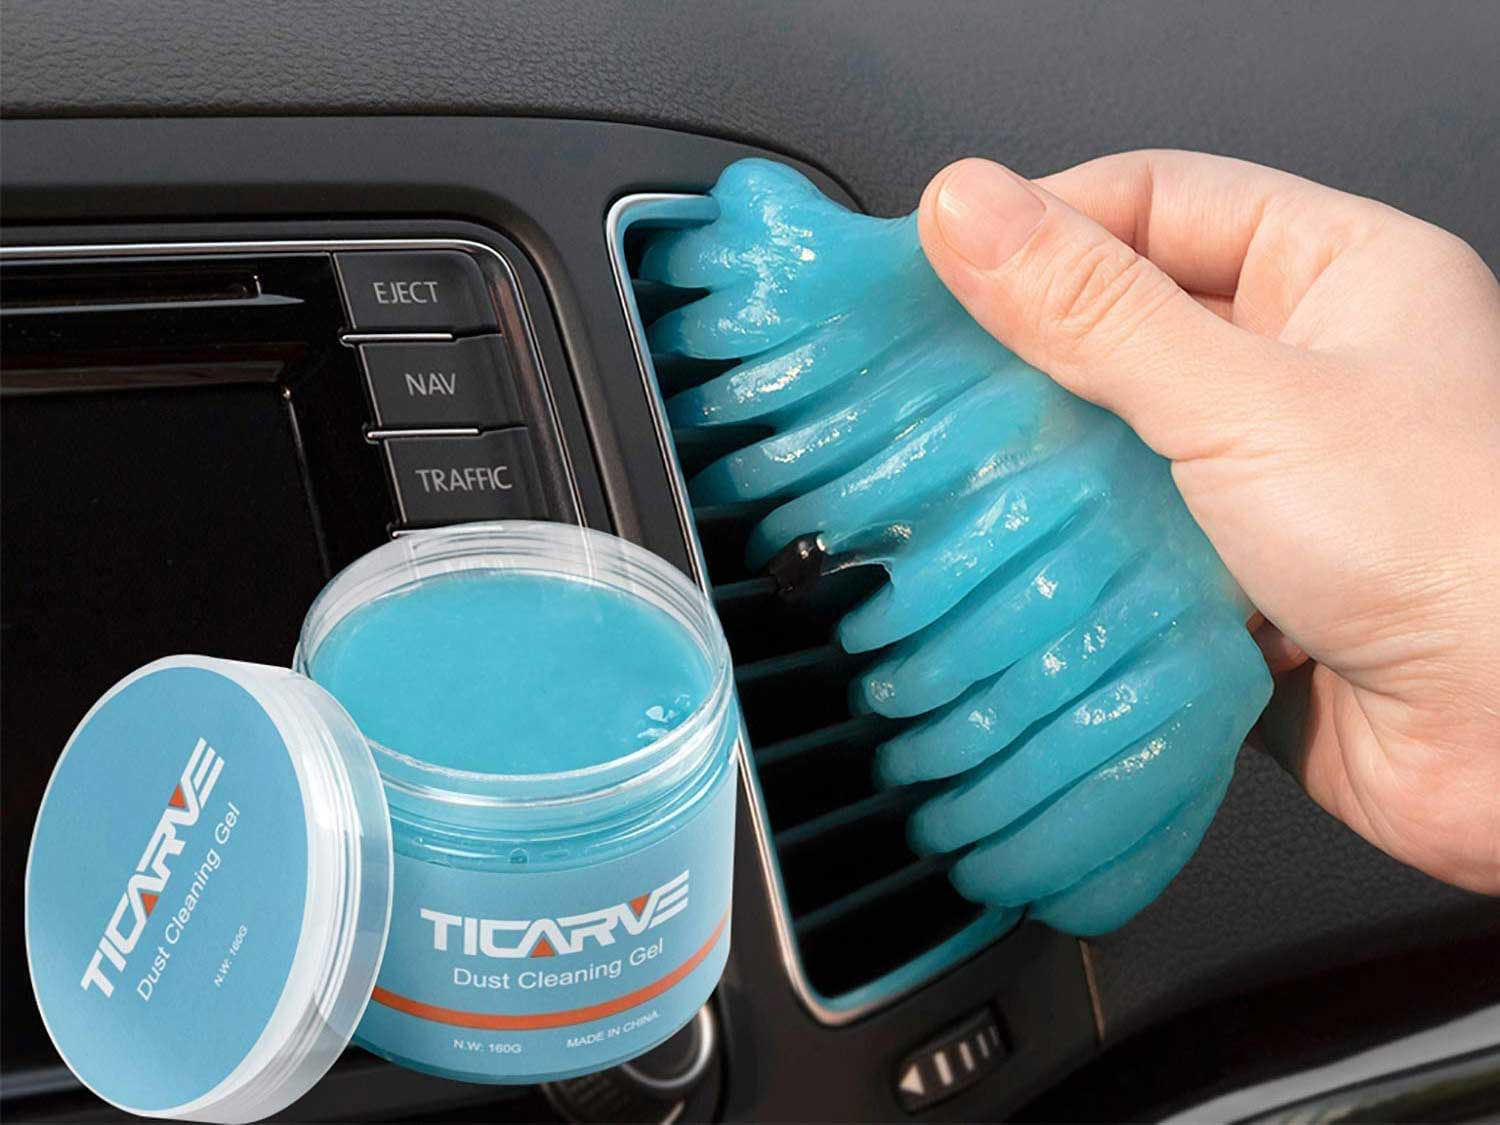 TICARVE Cleaning Gel for Car Detailing Putty Auto Cleaning Putty Auto Detailing Gel Detail Tools Car Interior Cleaner Universal Dust Cleaner Gel Vent Cleaner Keyboard Cleaner for Laptop New